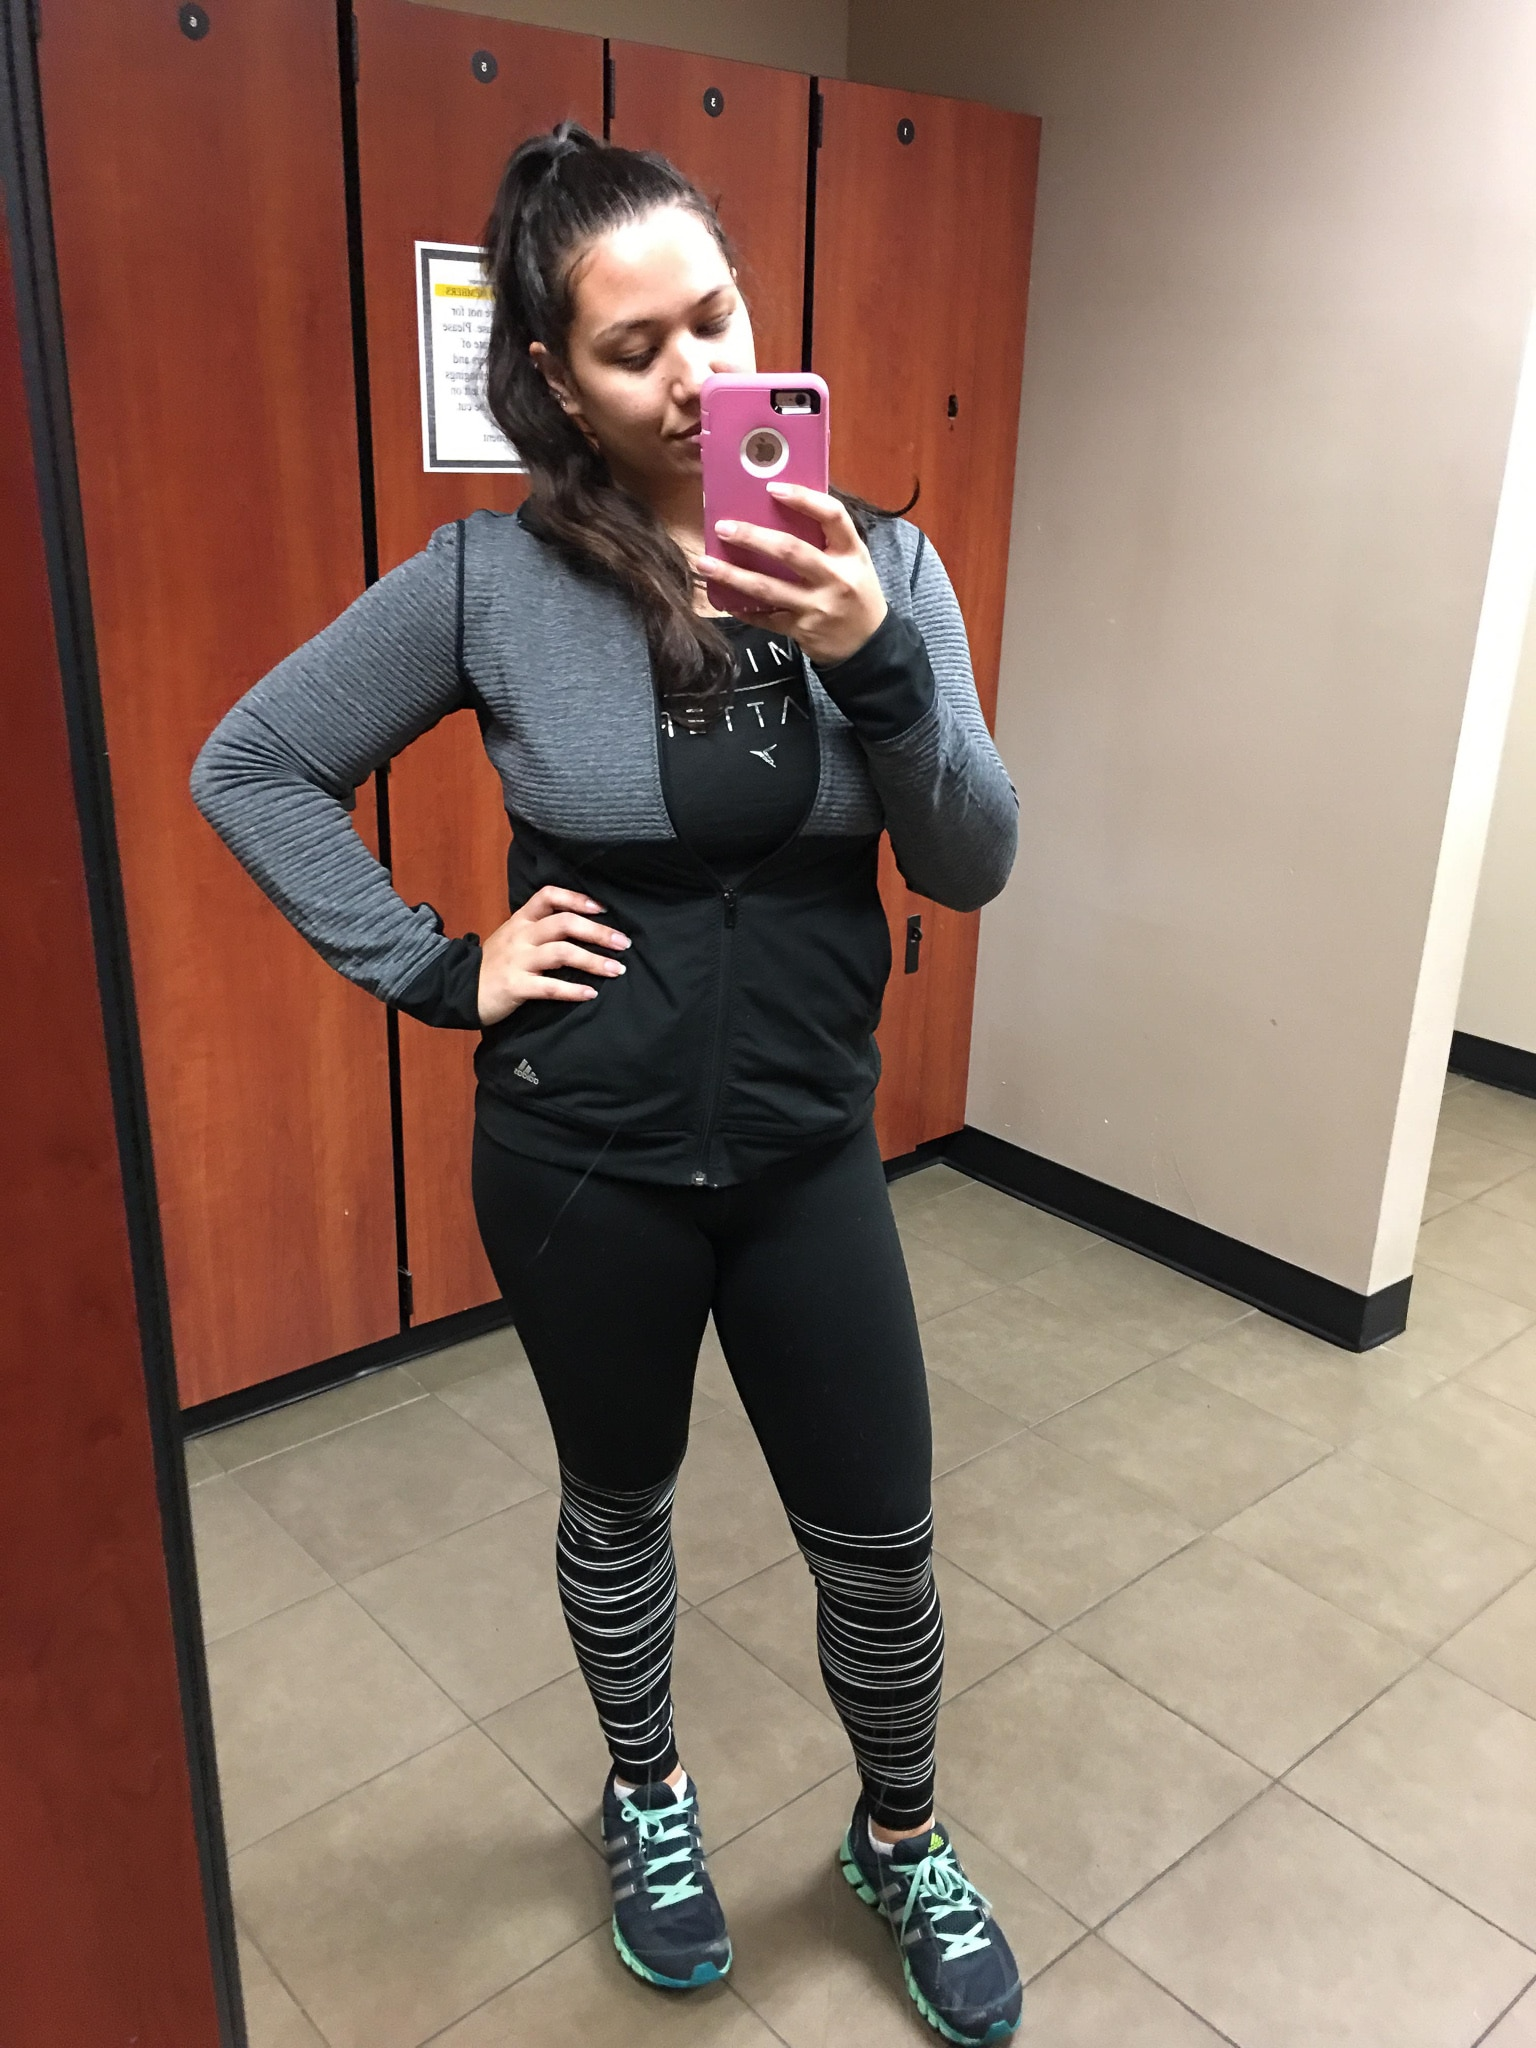 Jay Simms Workout Outfit. Planet Fitness Judgement Free Zones for the